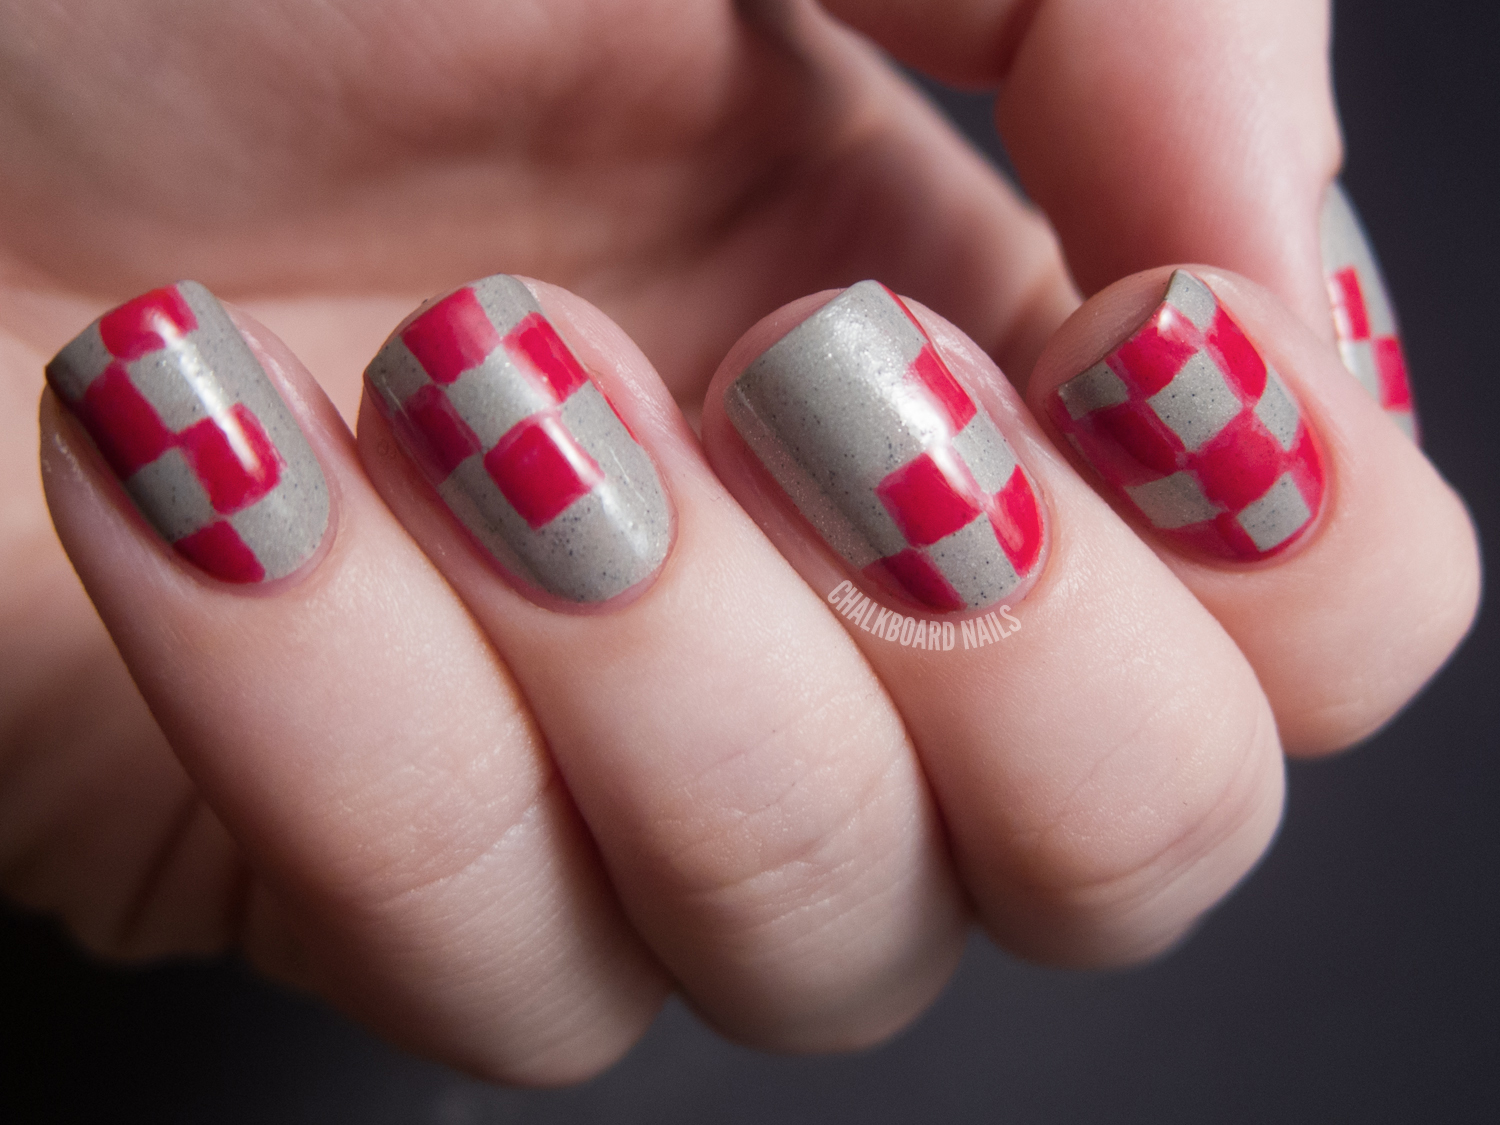 to do pattern nails i decided to do checkerboard nails